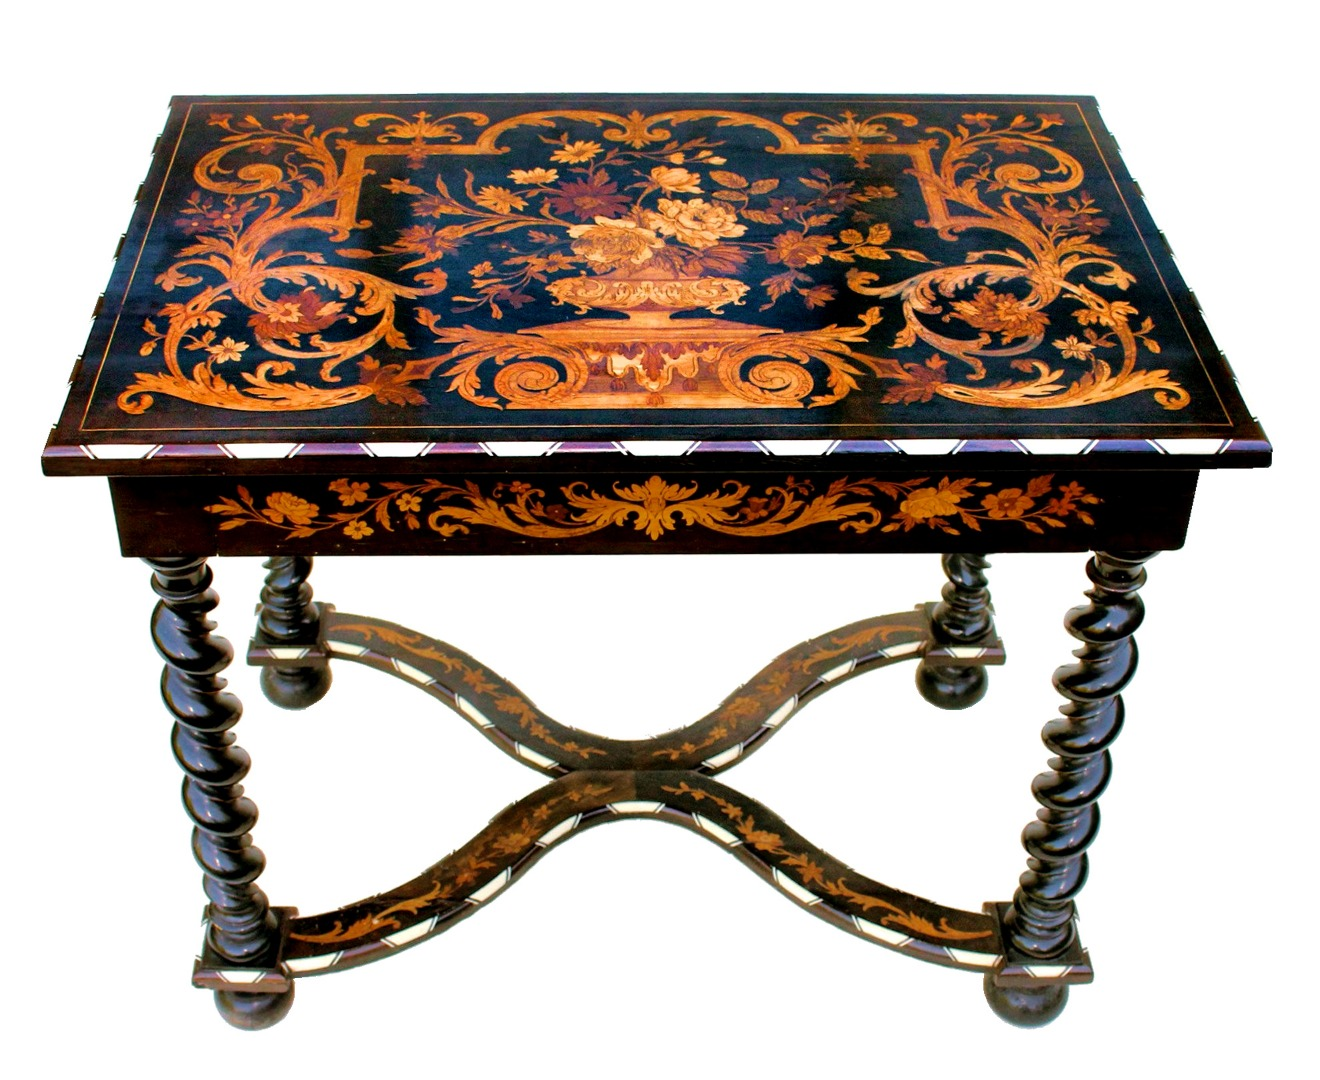 NAPOLEON III PERIOD TABLE